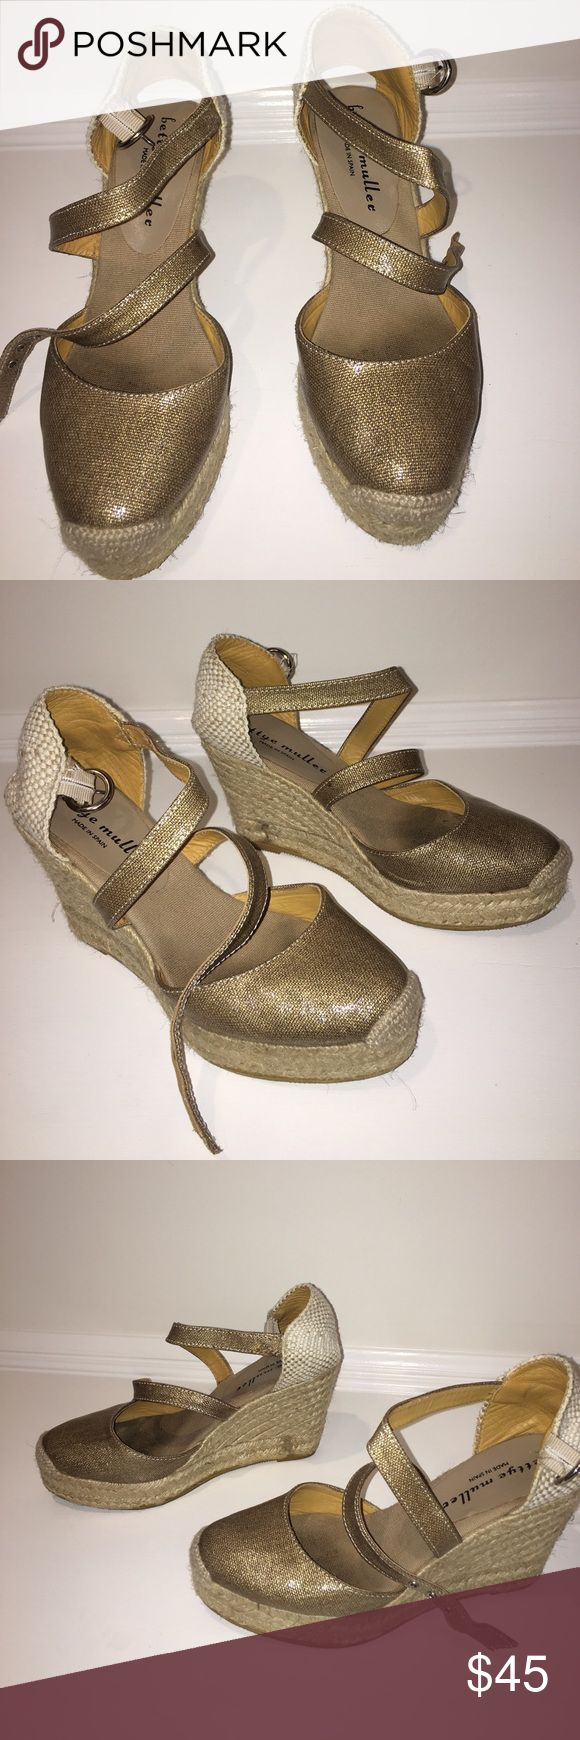 bettye muller espadrille shoes  ✨ Bettye Muller gold espadrilles ✨ previously loved but still have tons of life left ! Make an offer ! bettye muller Shoes Sandals